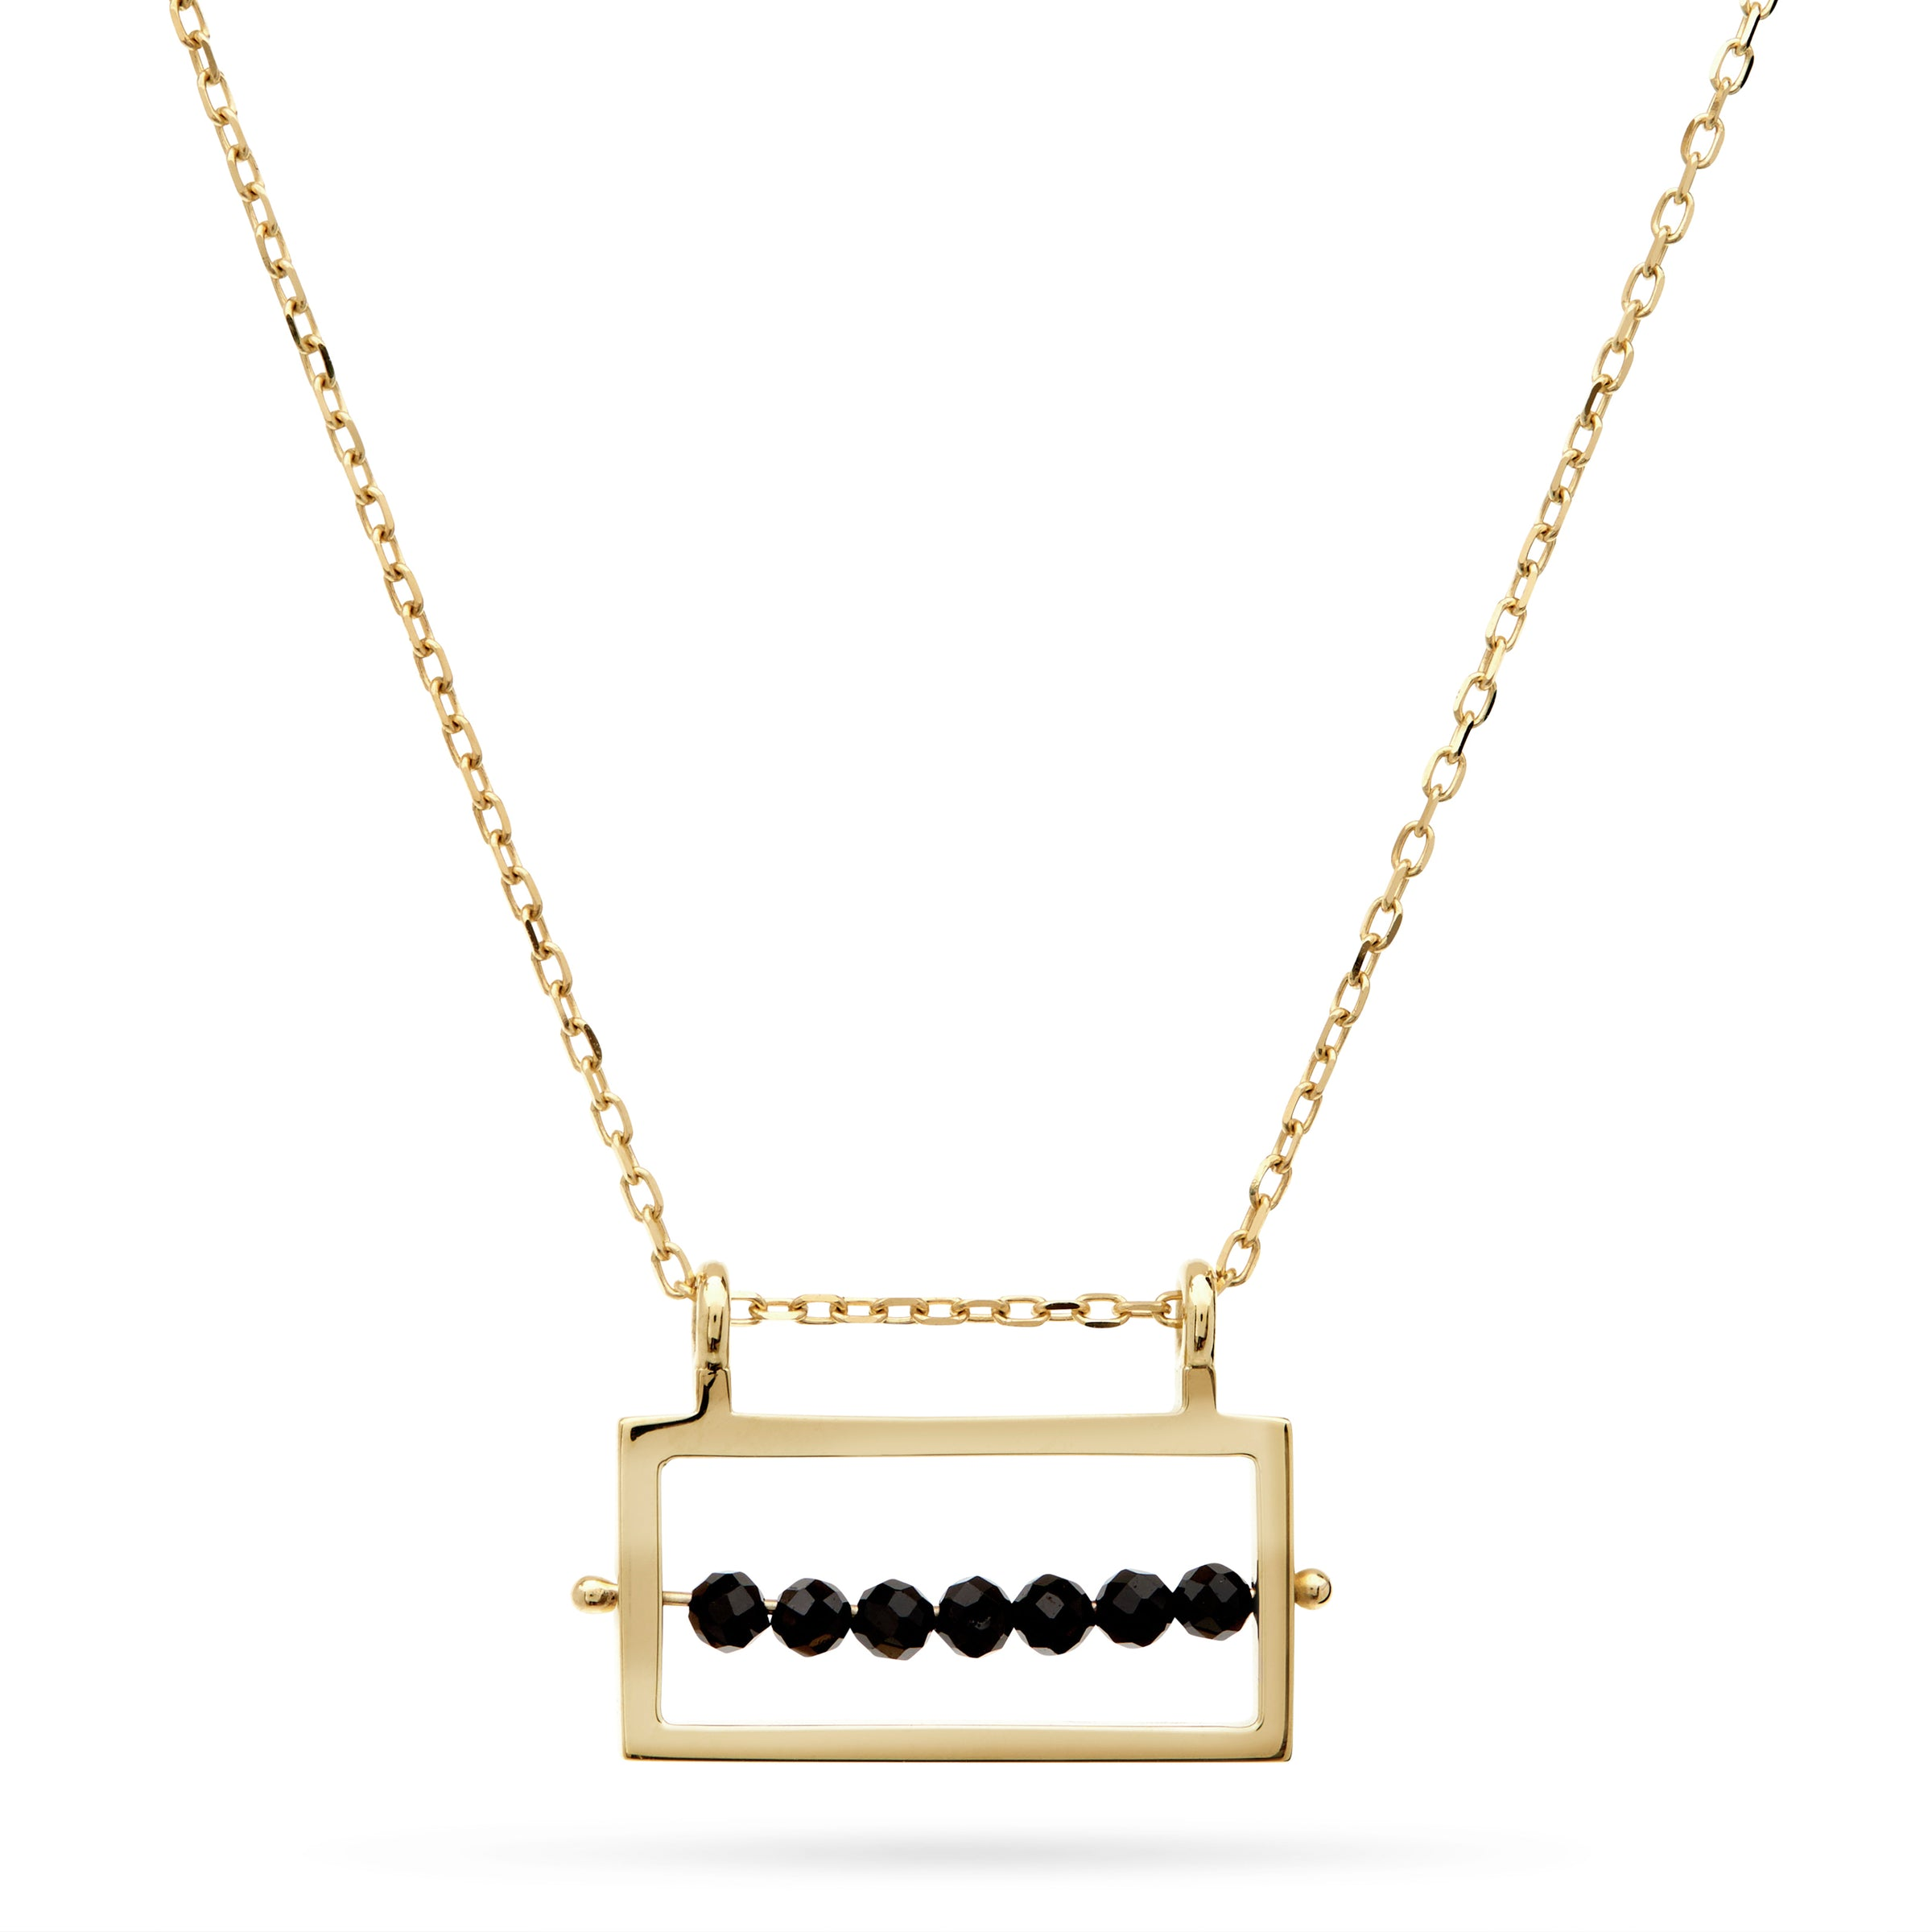 Gold Abacus Necklace by Luke Rose